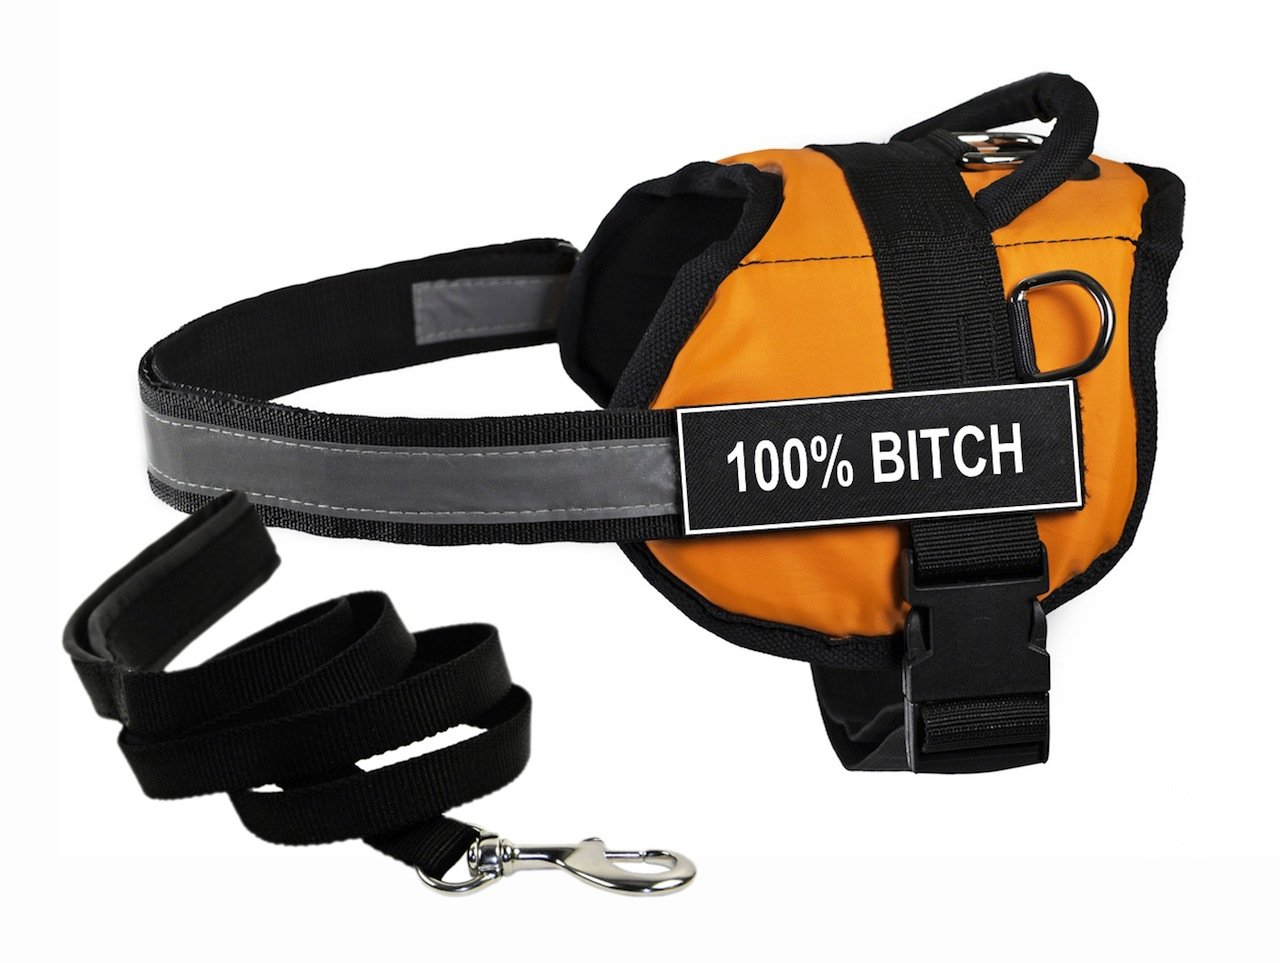 Dean & Tyler's DT Works orange 100% Bitch  Harness with, Medium, and Black 6 ft Padded Puppy Leash.